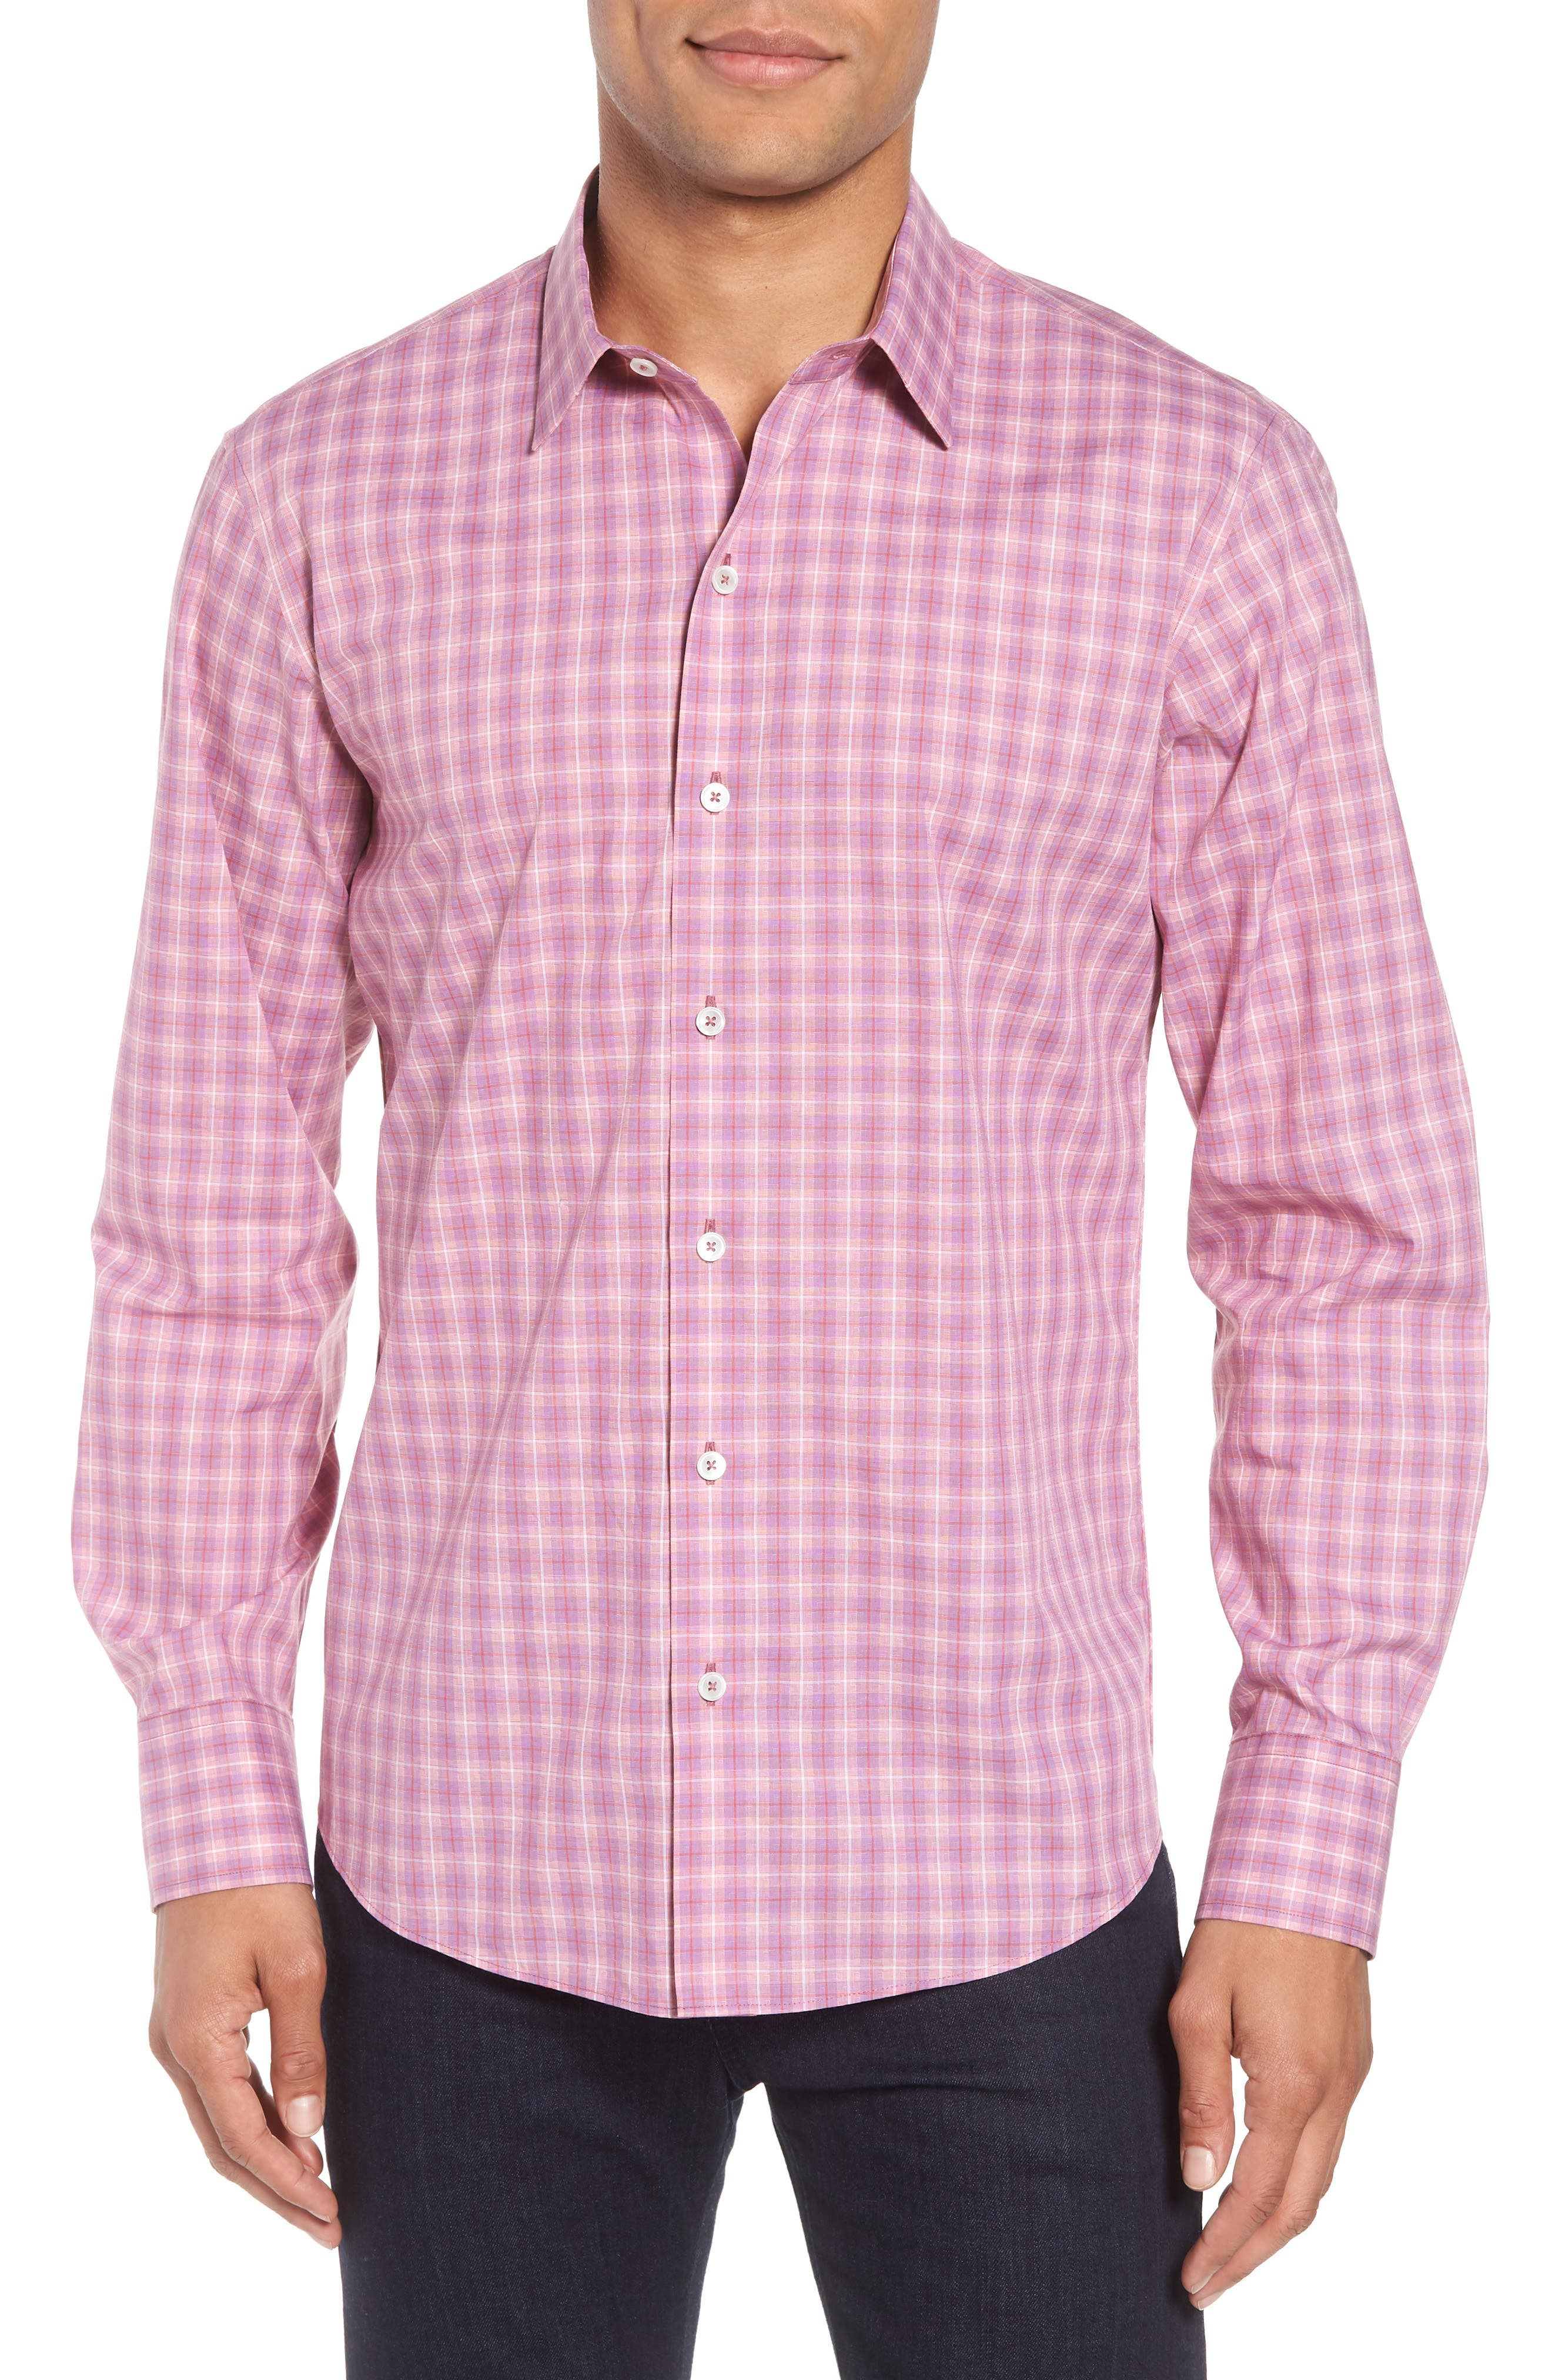 Duran Regular Fit Sport Shirt,                         Main,                         color, 650